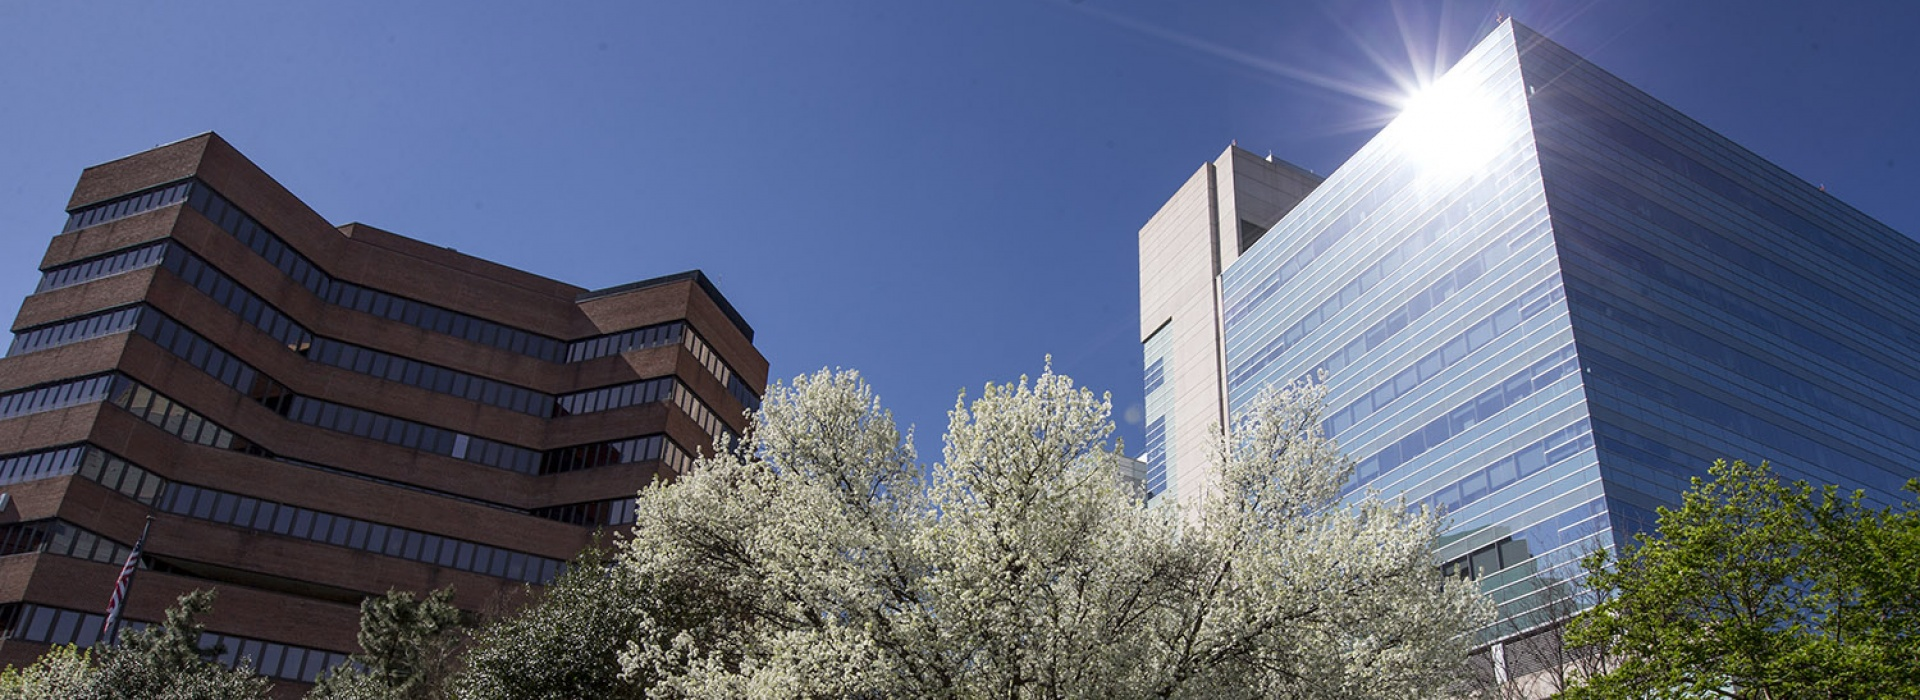 VUMC file photo in spring